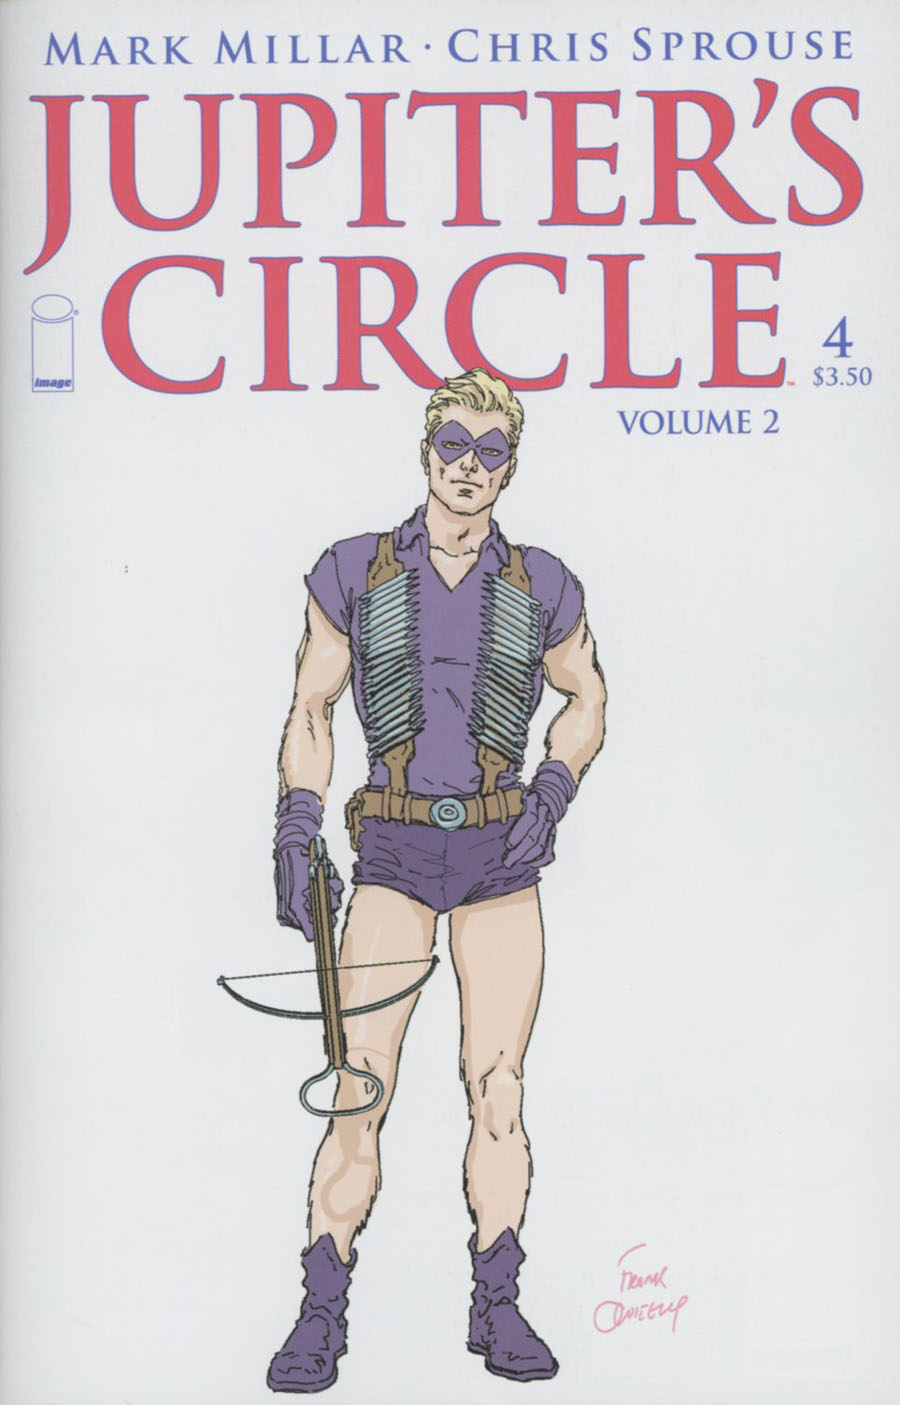 Jupiters Circle Vol 2 #4 Cover B Frank Quitely